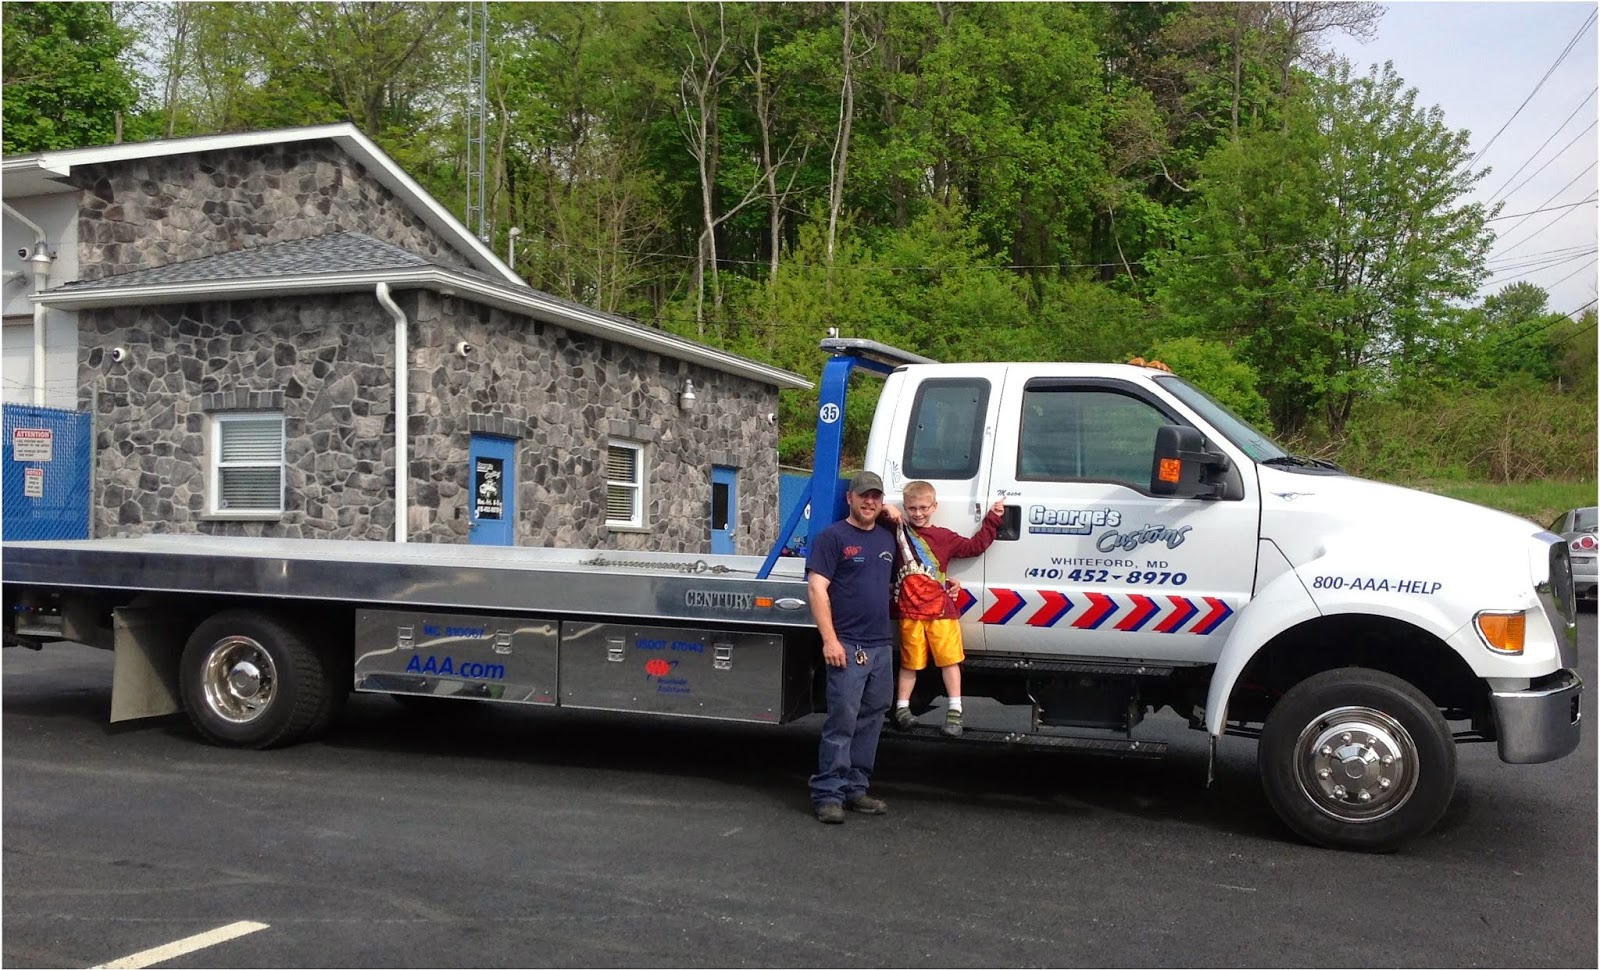 Employee at George's Custom Towing